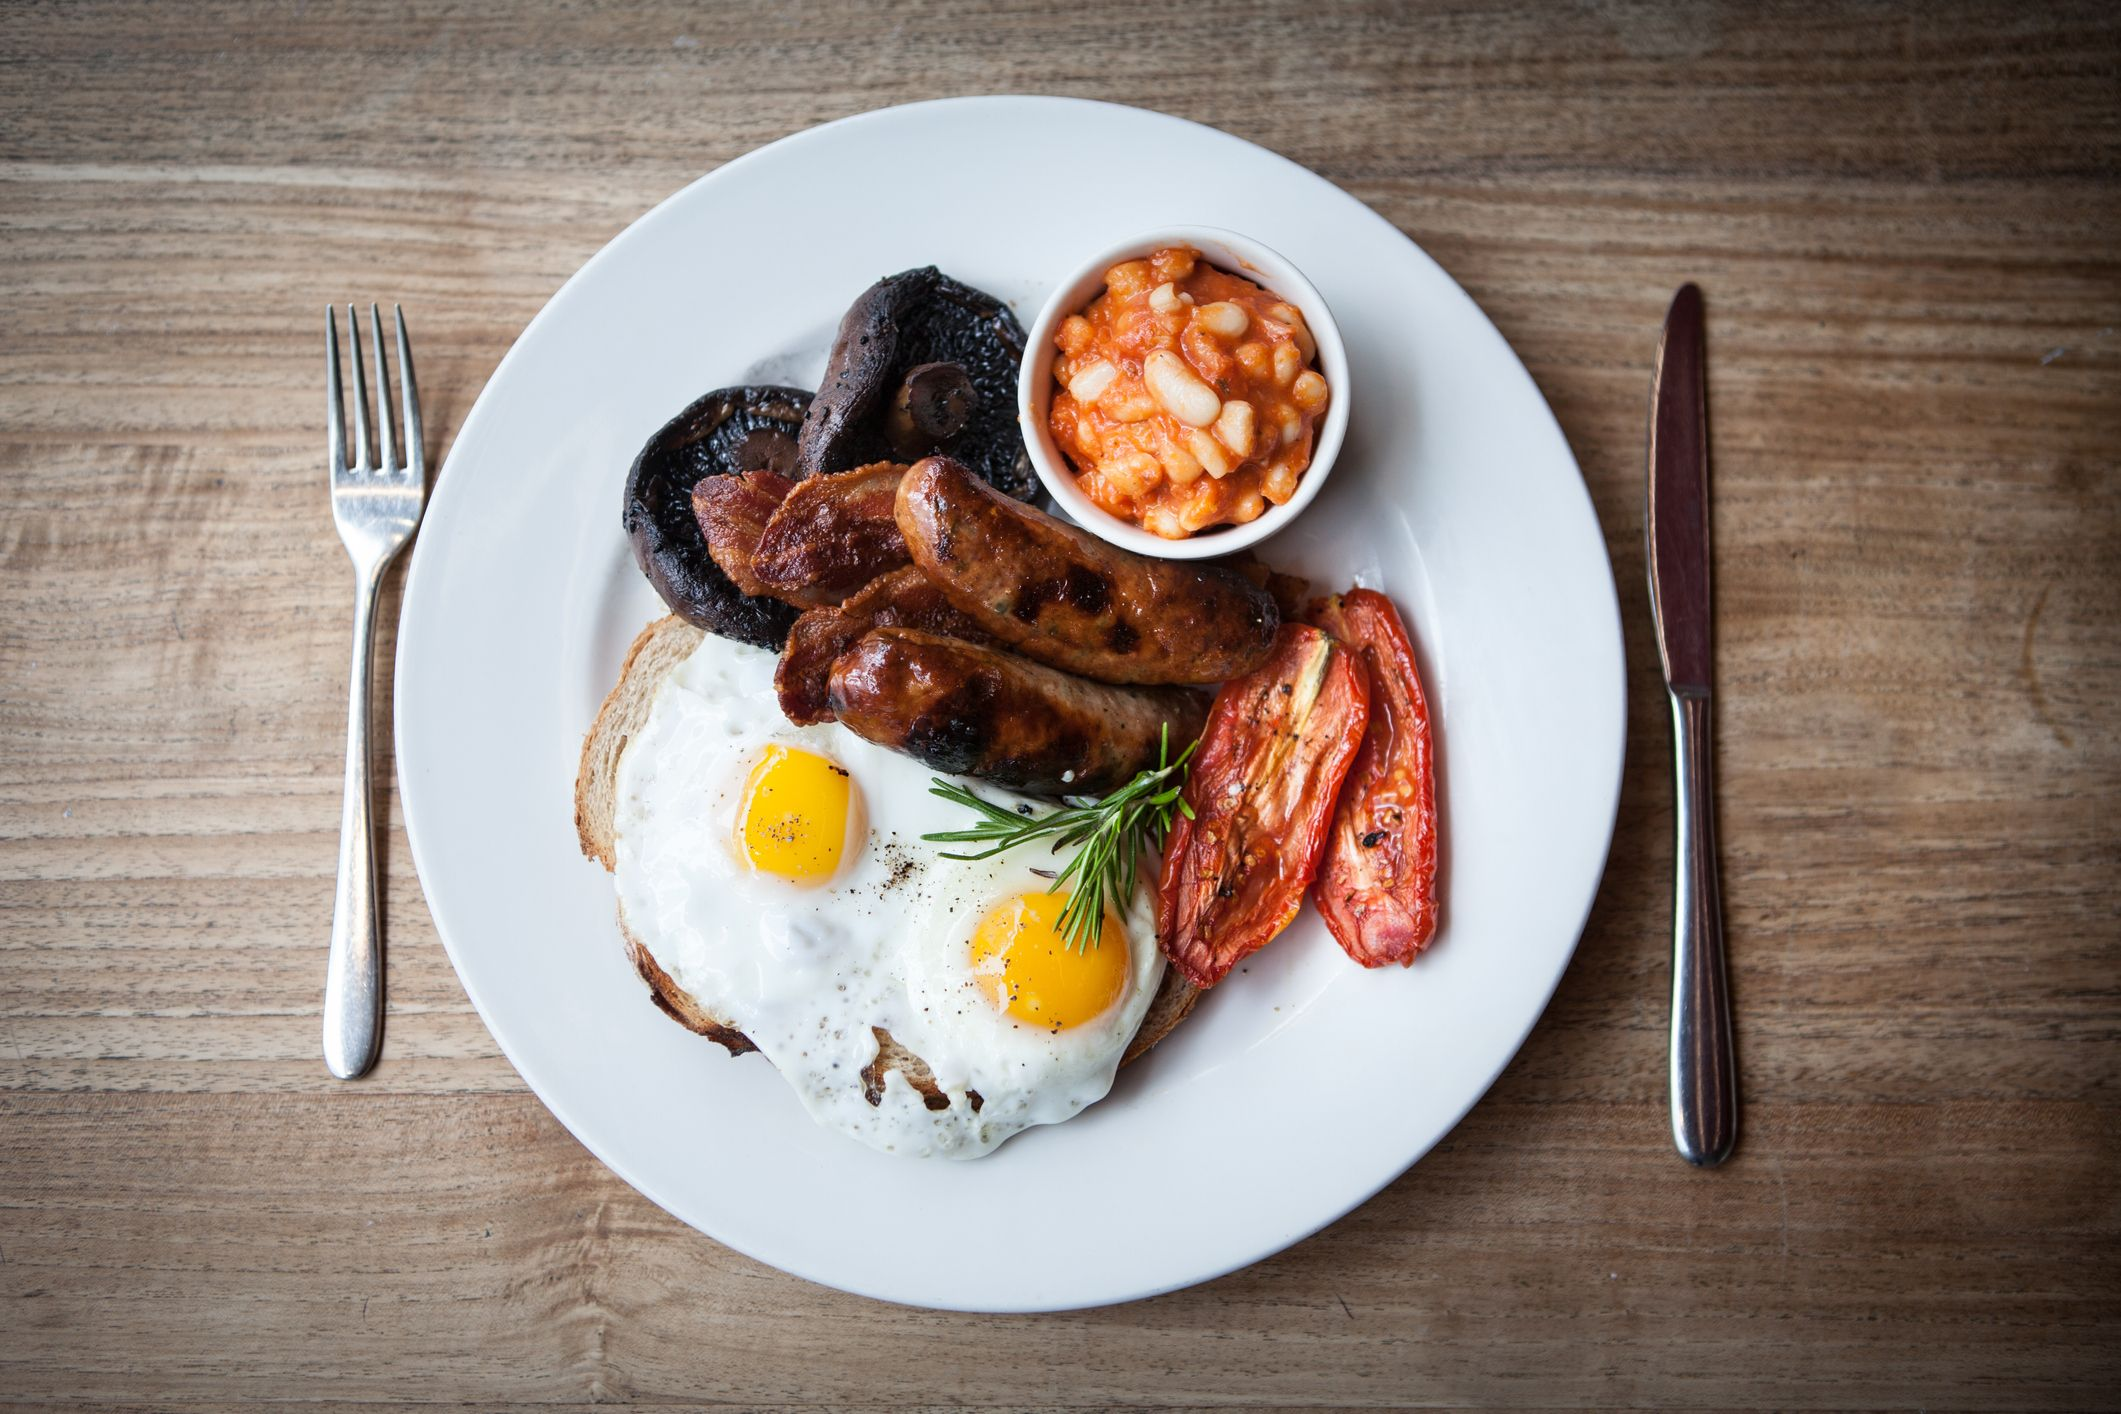 The Best Breakfast Spots In Every UK City, According to Trip Advisor